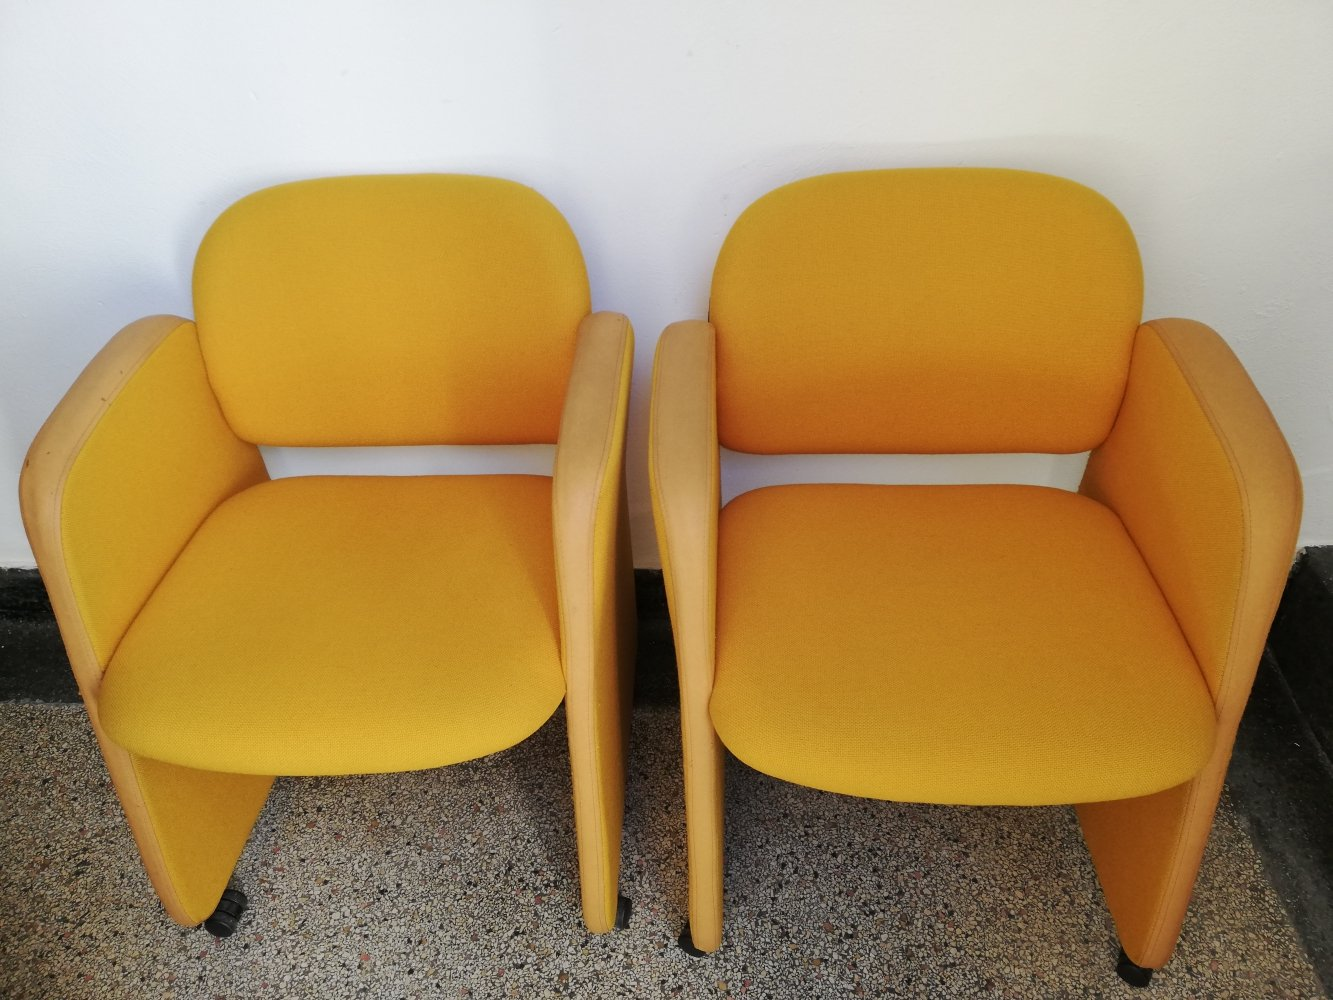 2 x Ahrend arm chair, 1990s